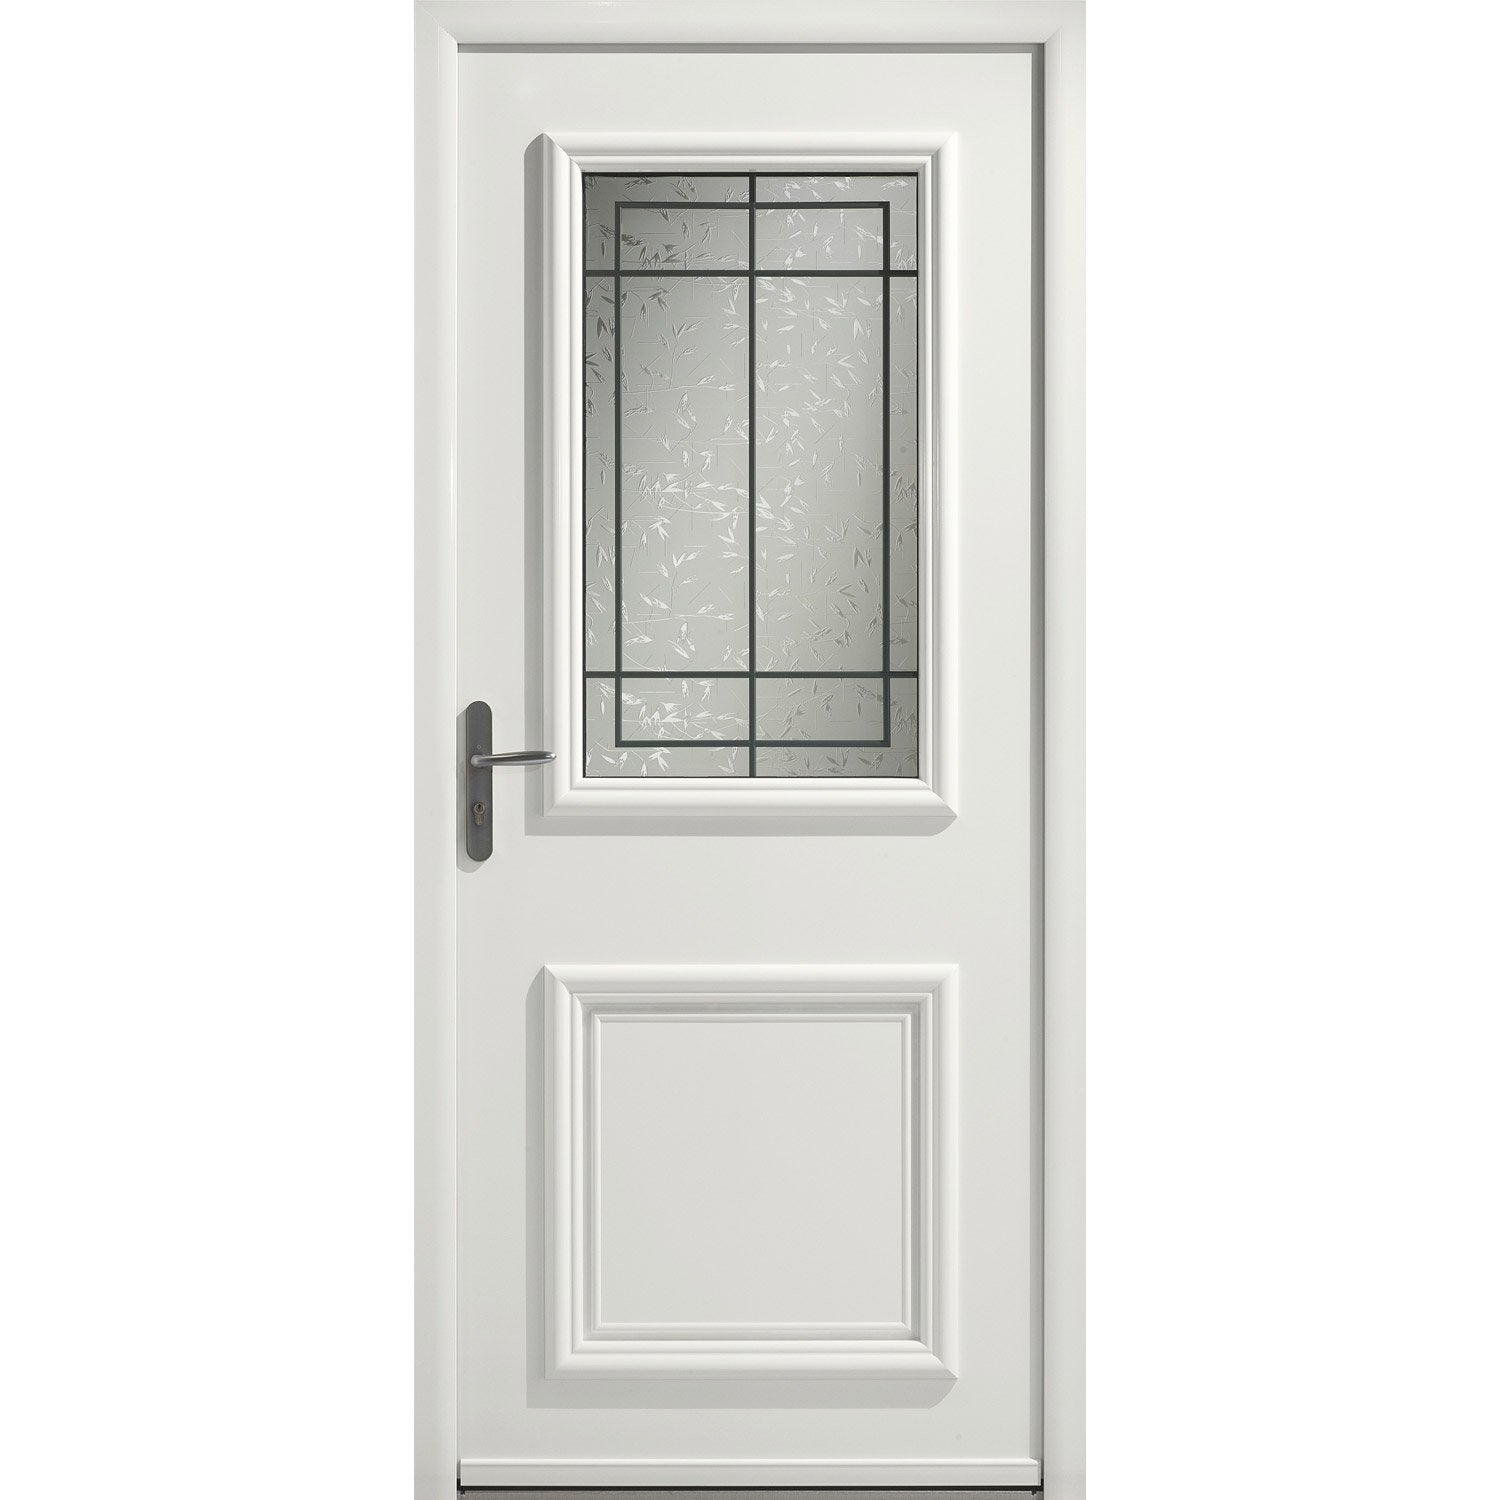 Voilage sur mesure leroy merlin 28 images best rideau for Porte fenetre sur mesure leroy merlin